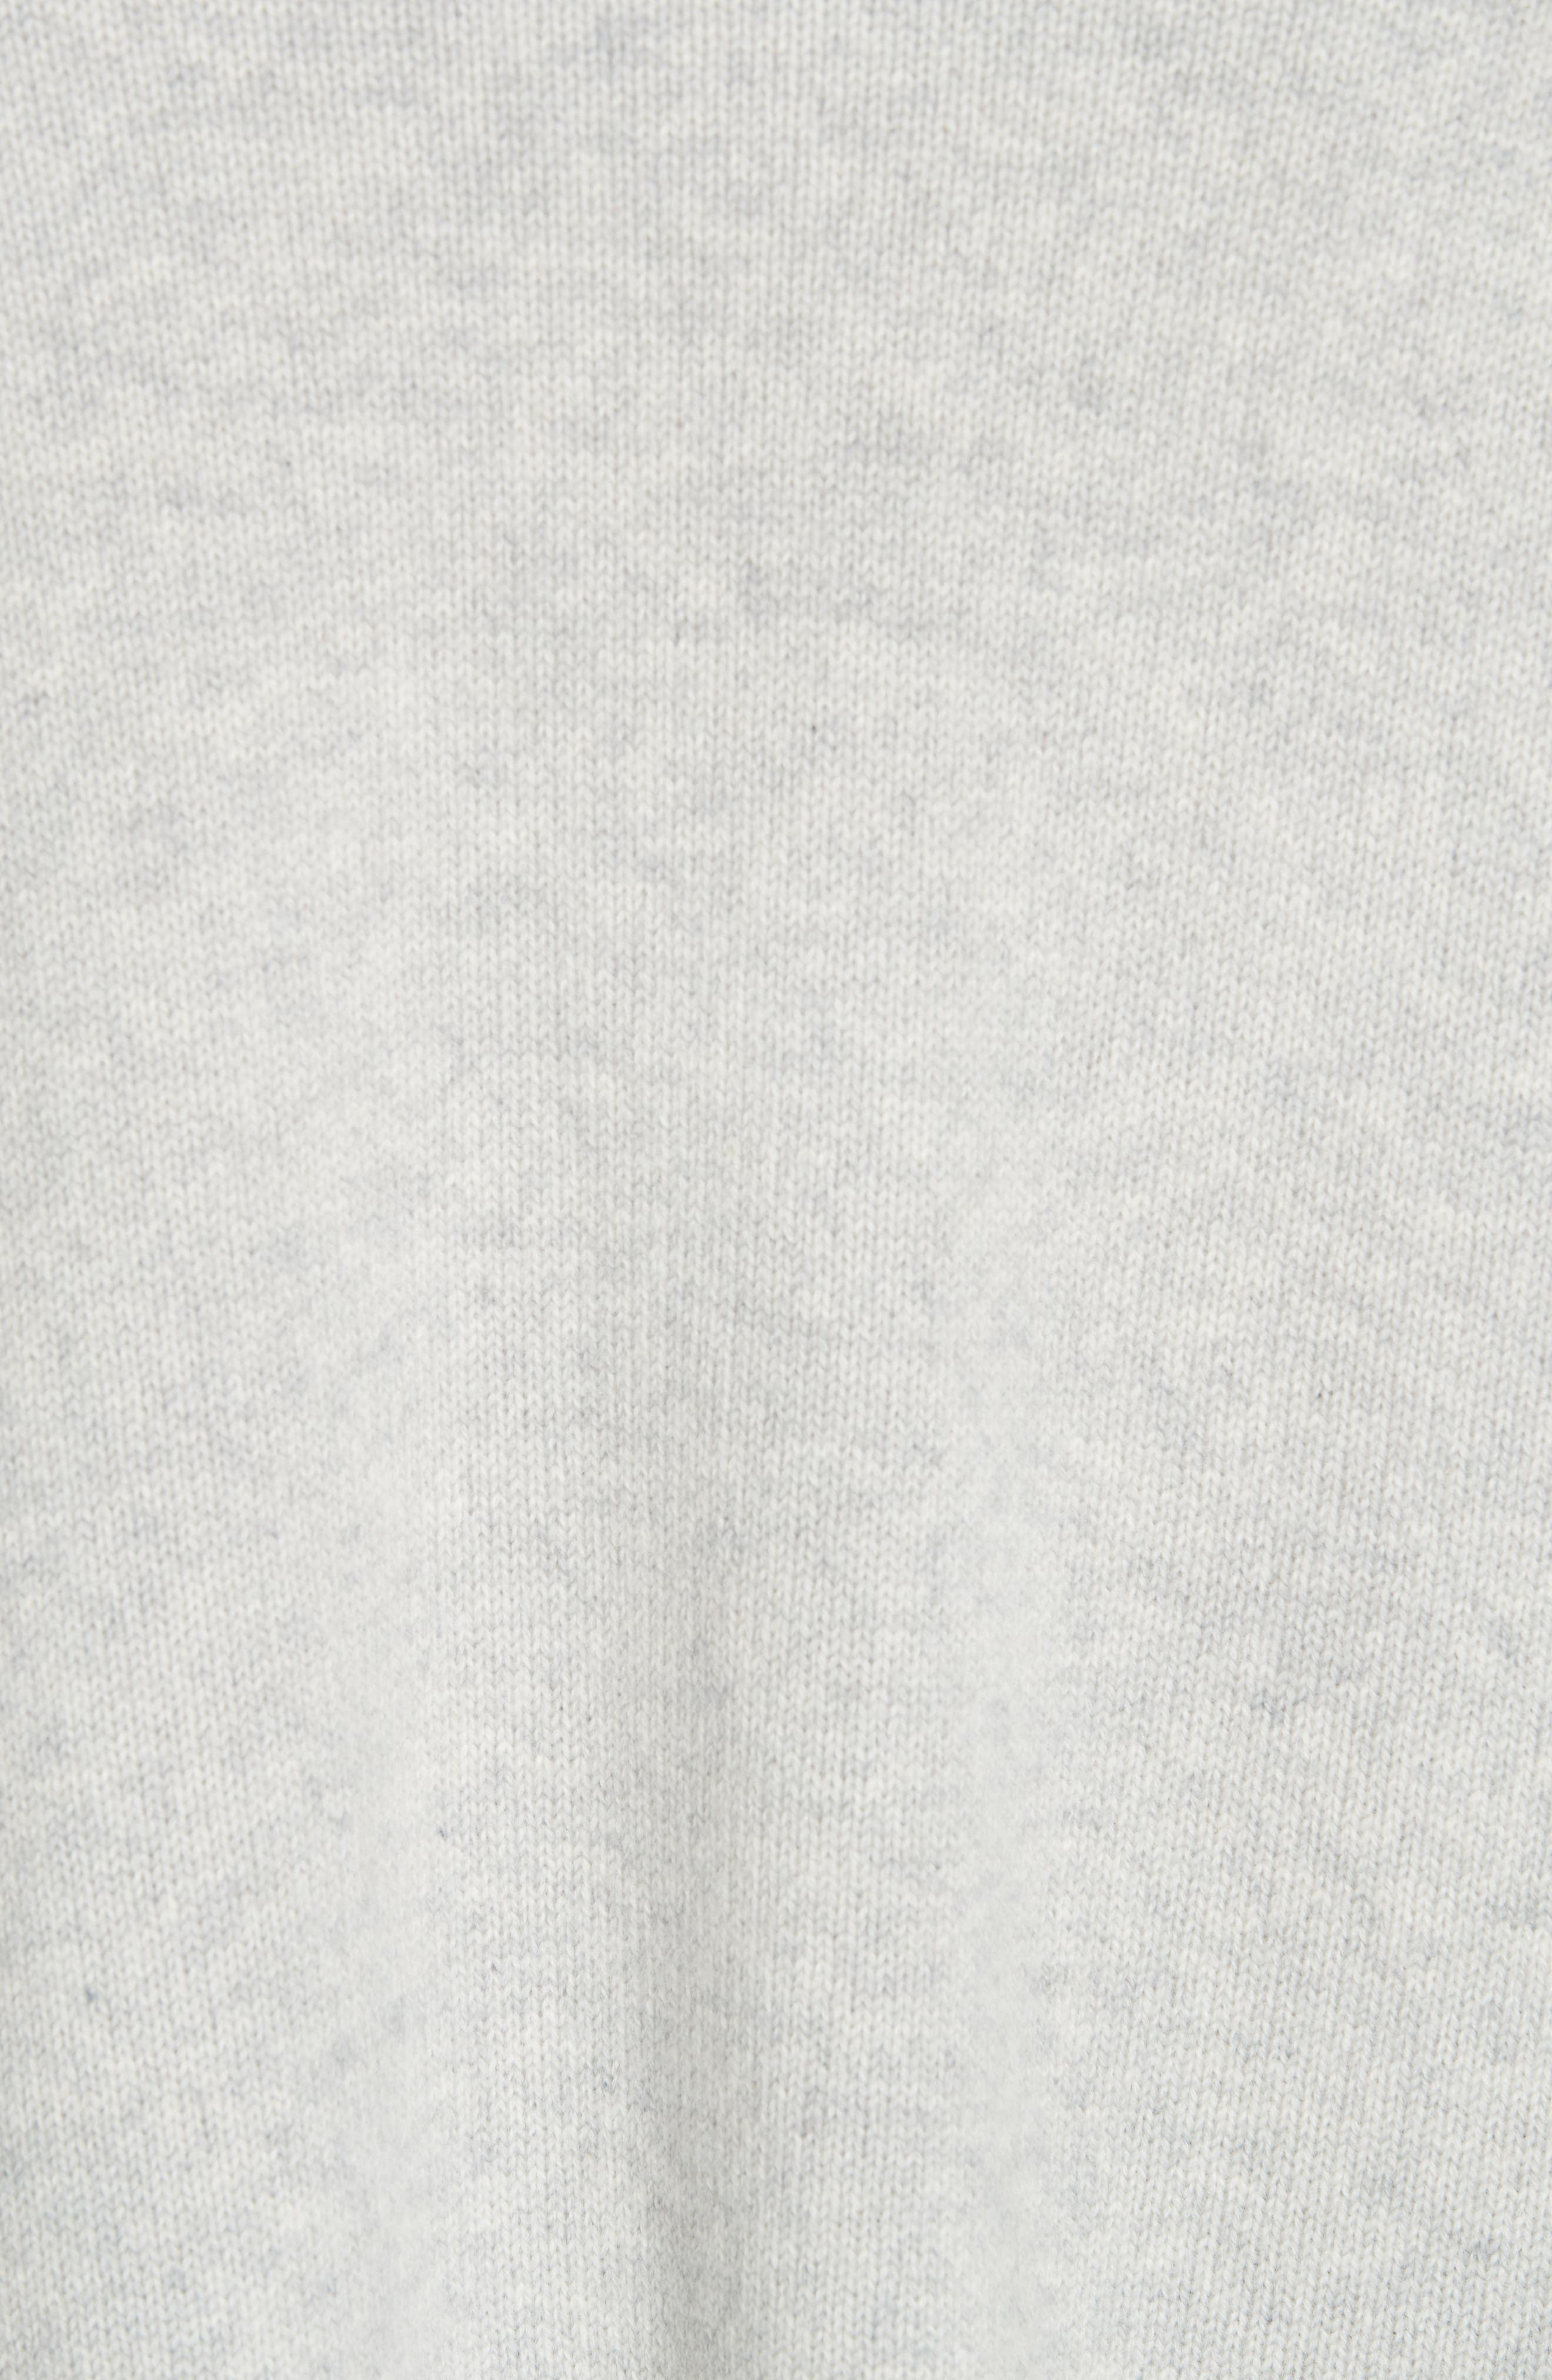 NORDSTROM SIGNATURE, Cashmere Blend Cardigan, Alternate thumbnail 5, color, GREY CLAY HEATHER